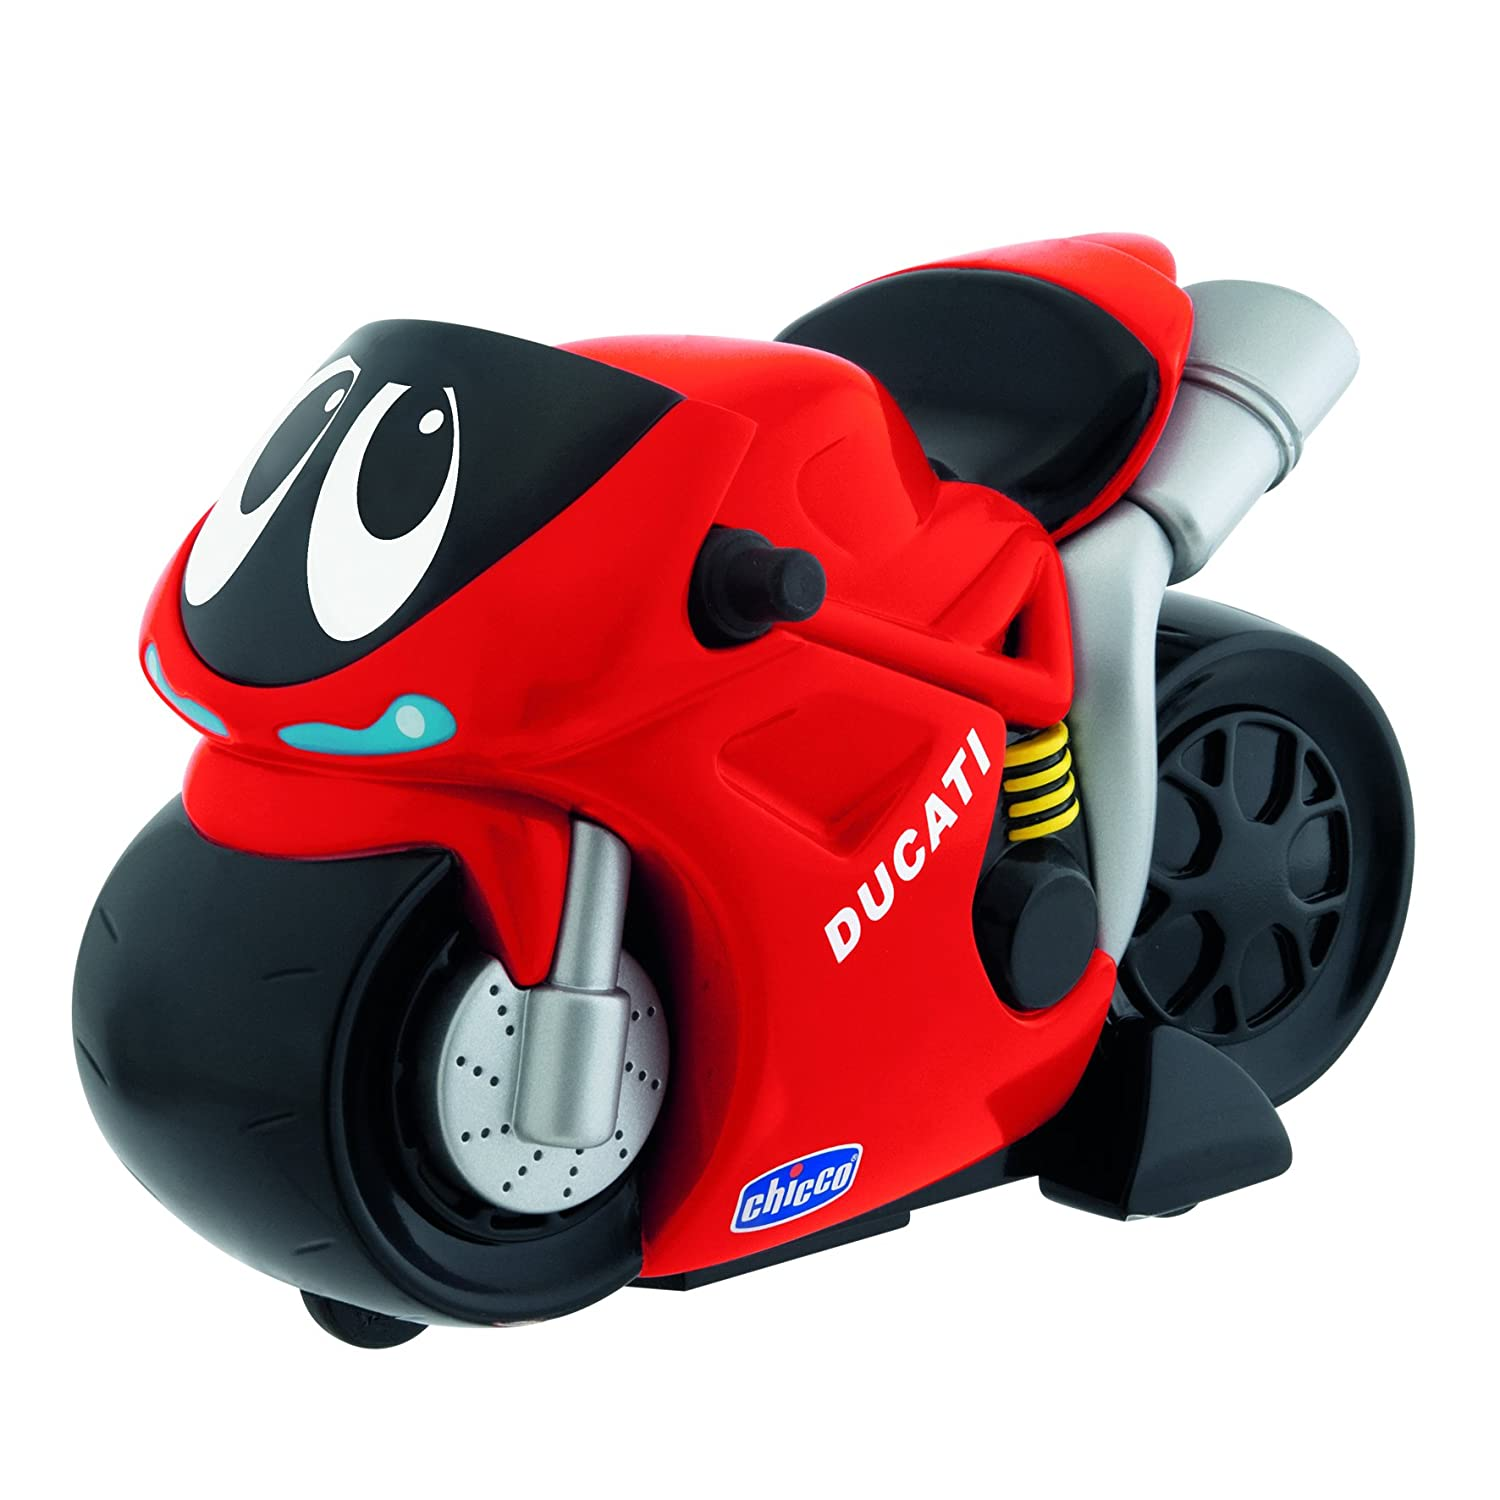 Chicco turbo touch Ducati miniature vehicle–blue 00000388080000